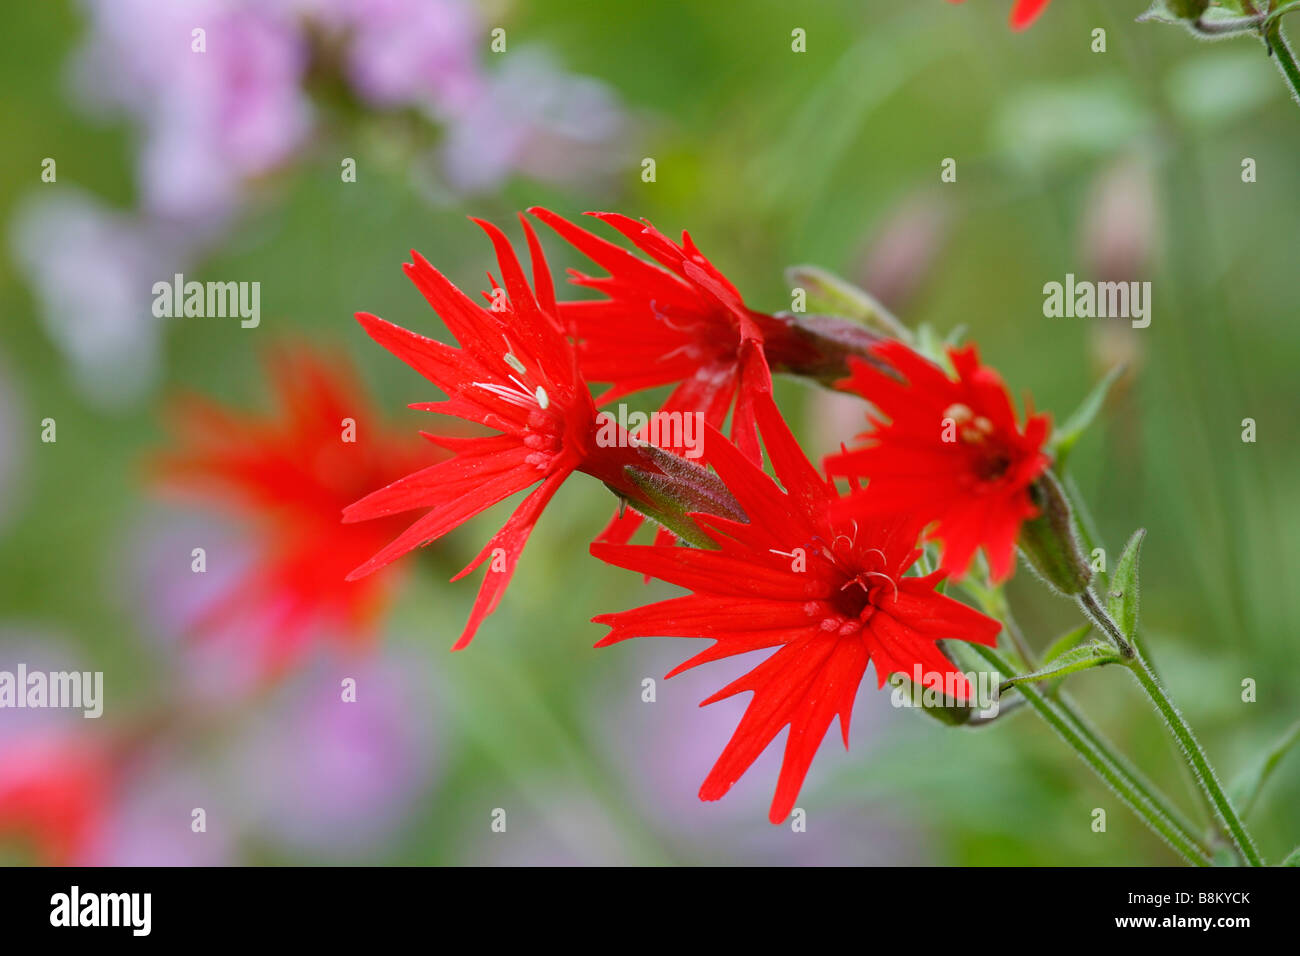 Fire Pink Flower Stock Photos Fire Pink Flower Stock Images Alamy